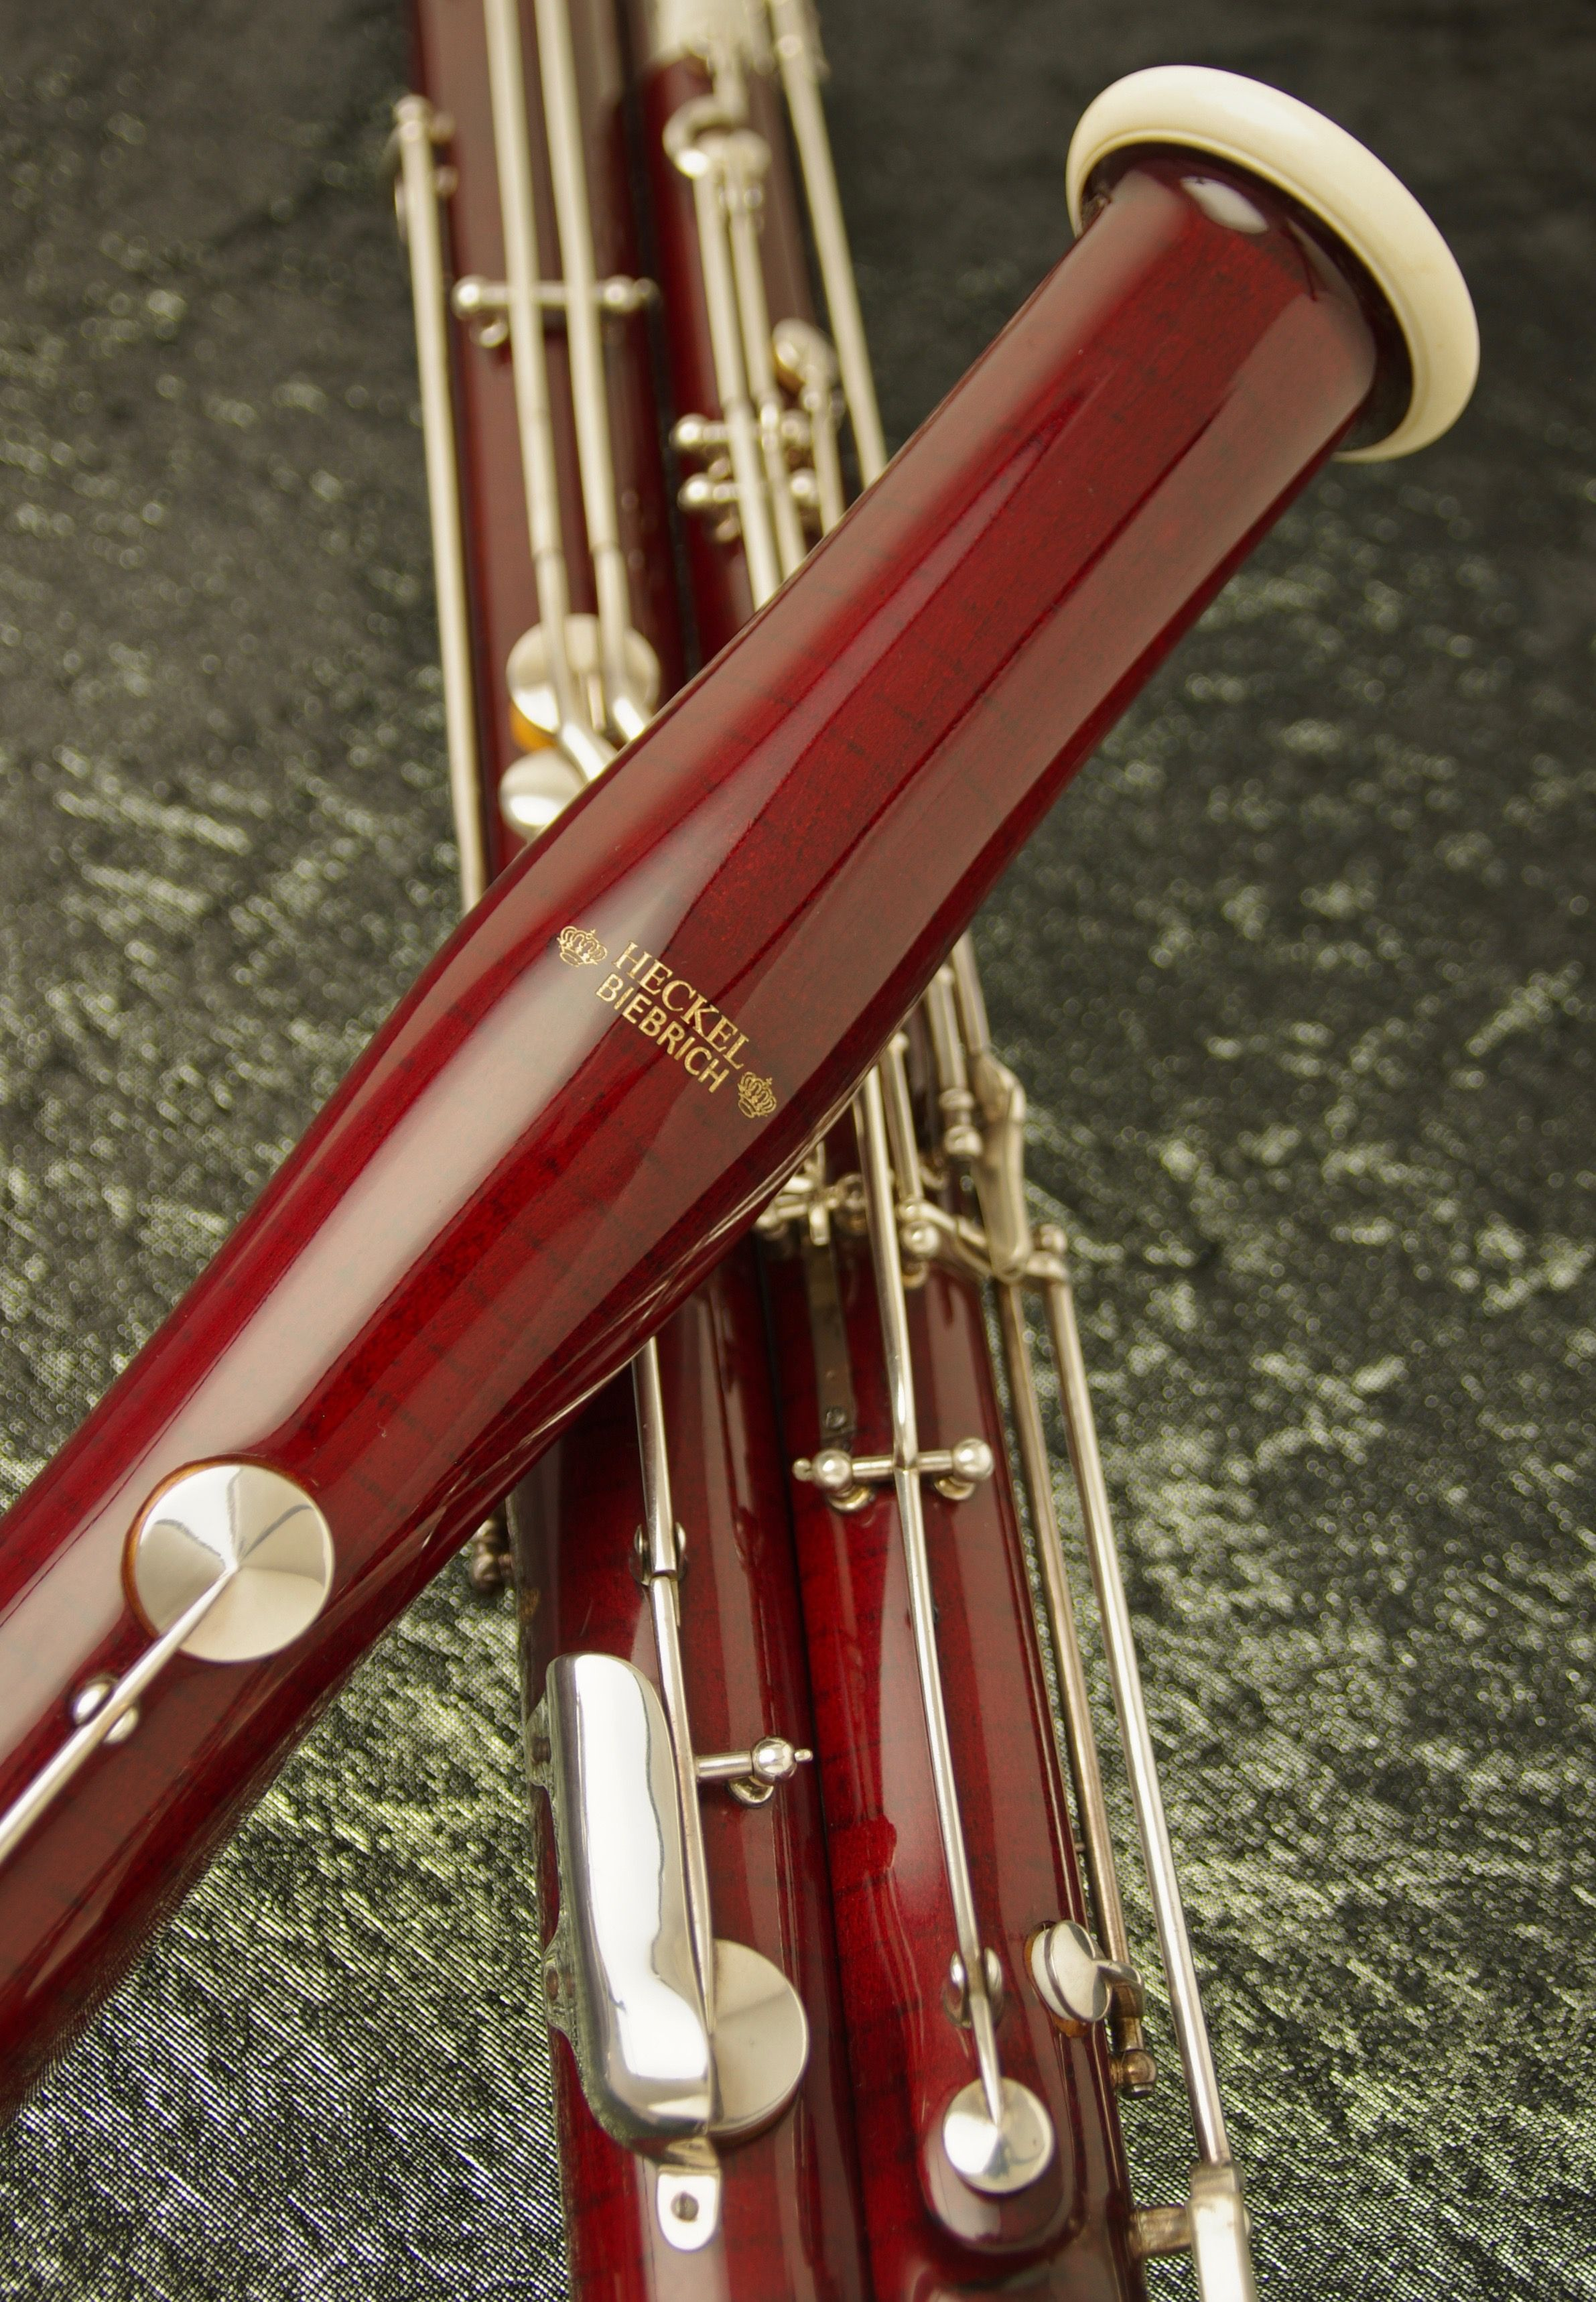 Available now, this Heckel 8000 series bassoon, exquisitely restored